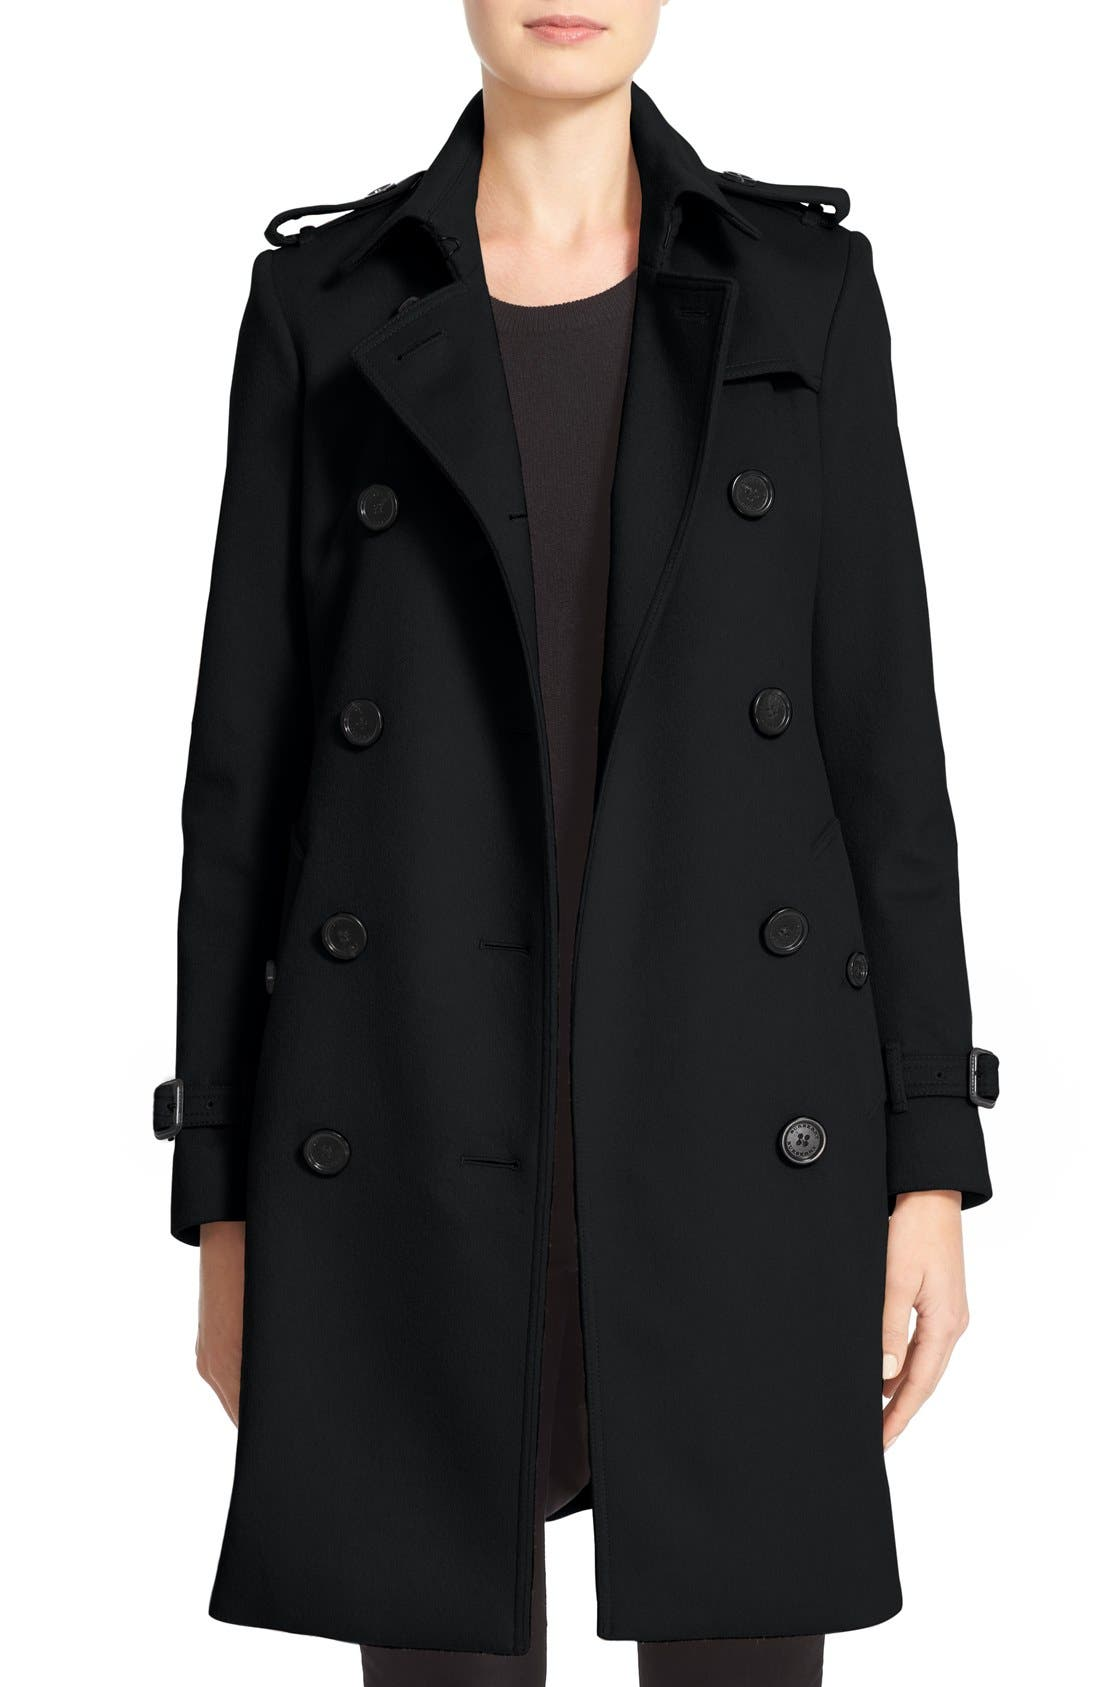 Kensington Double Breasted Wool & Cashmere Trench Coat,                             Main thumbnail 1, color,                             001